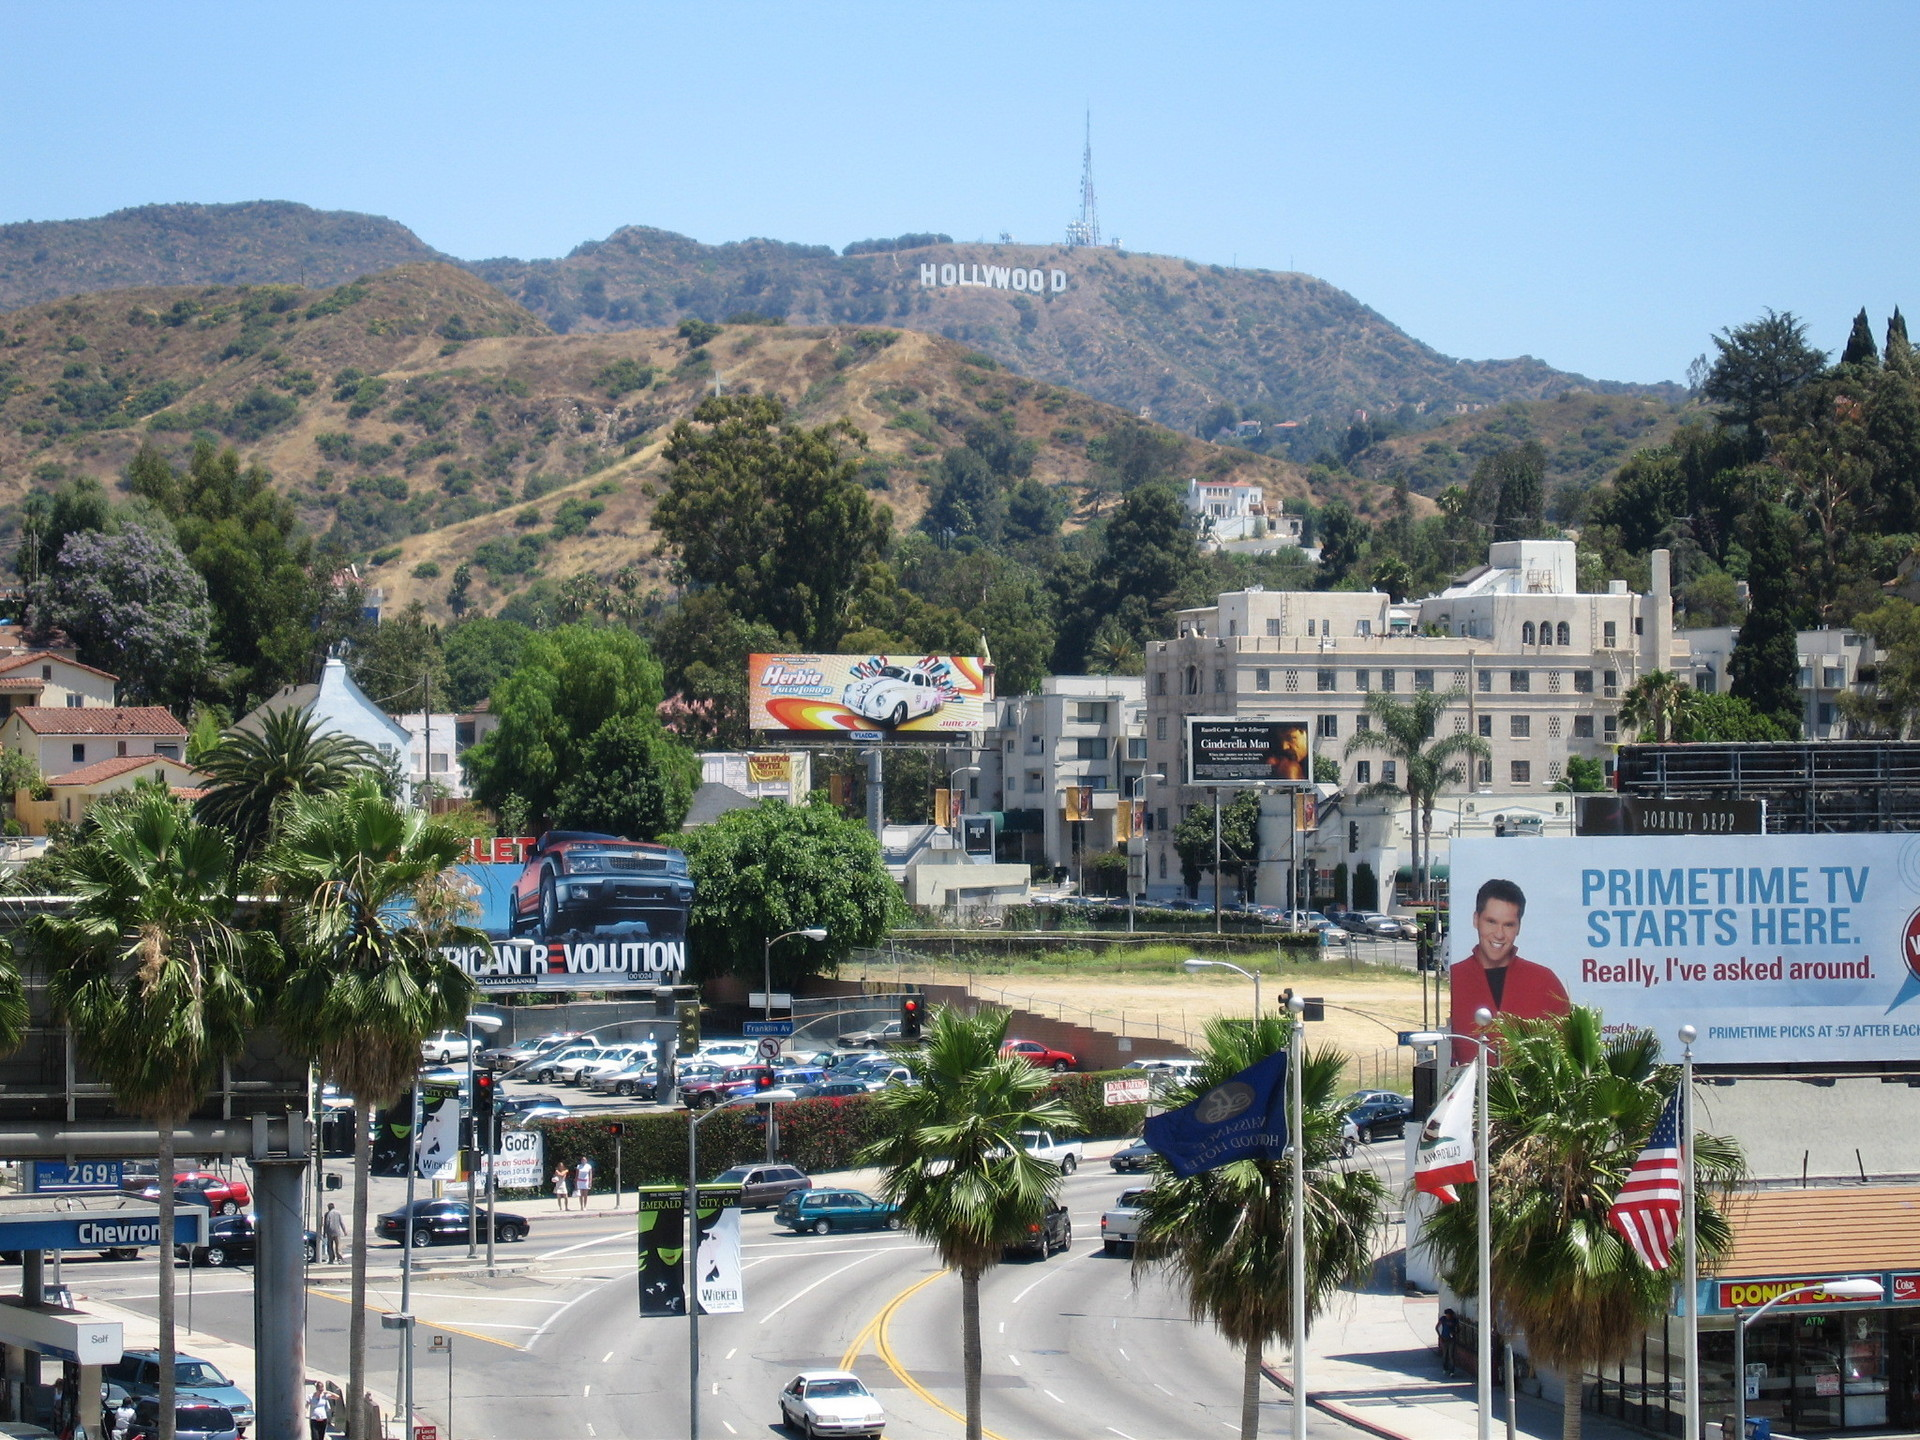 hollywood desktop background - photo #22